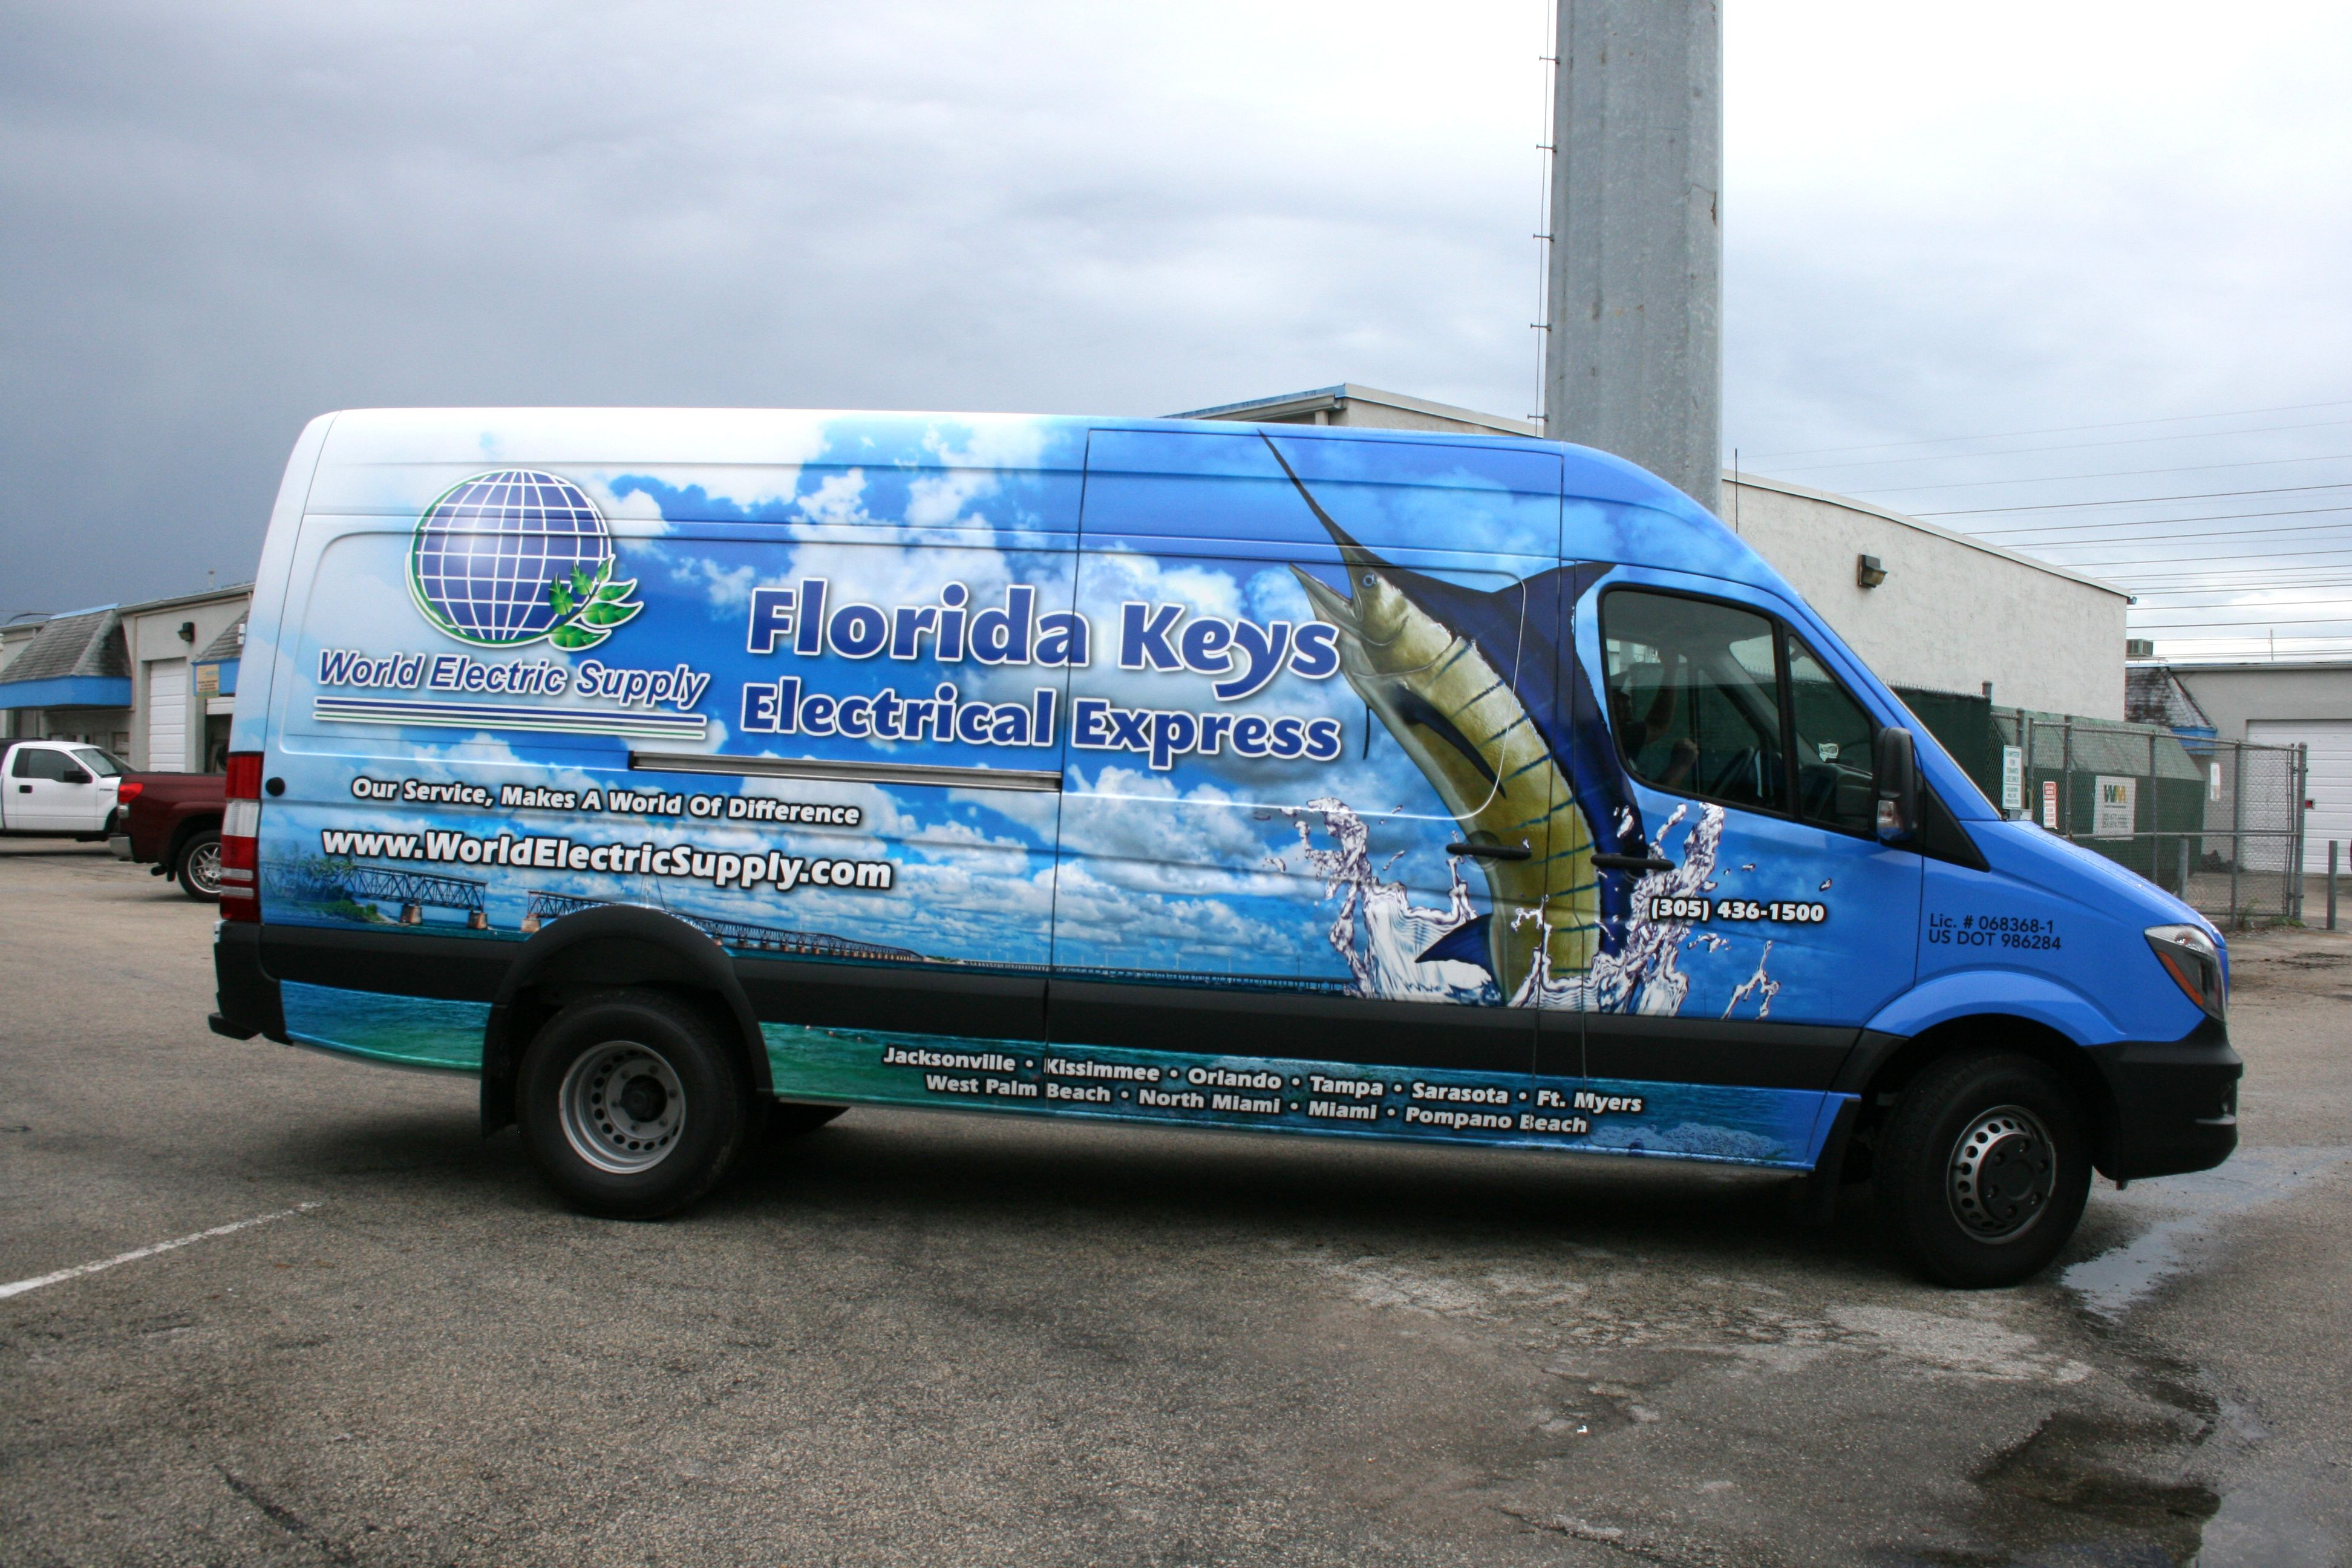 Florida Keys Mercedes Benz Sprinter Van Wrap For World Electric